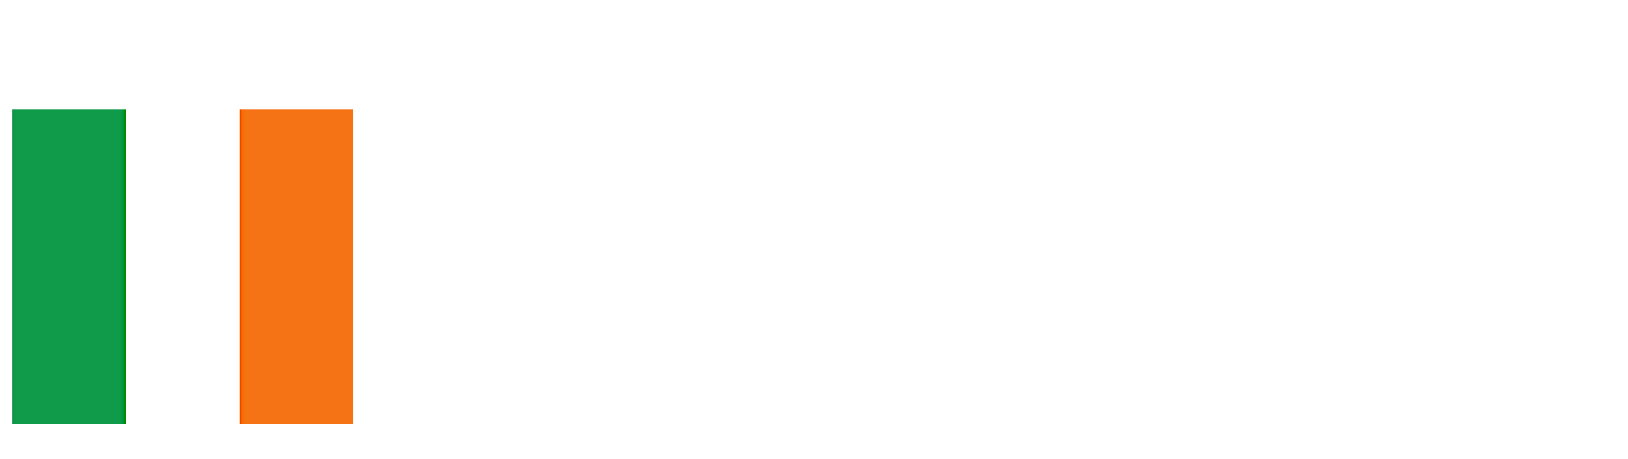 National Manufacturing Event Conference & Exhibition